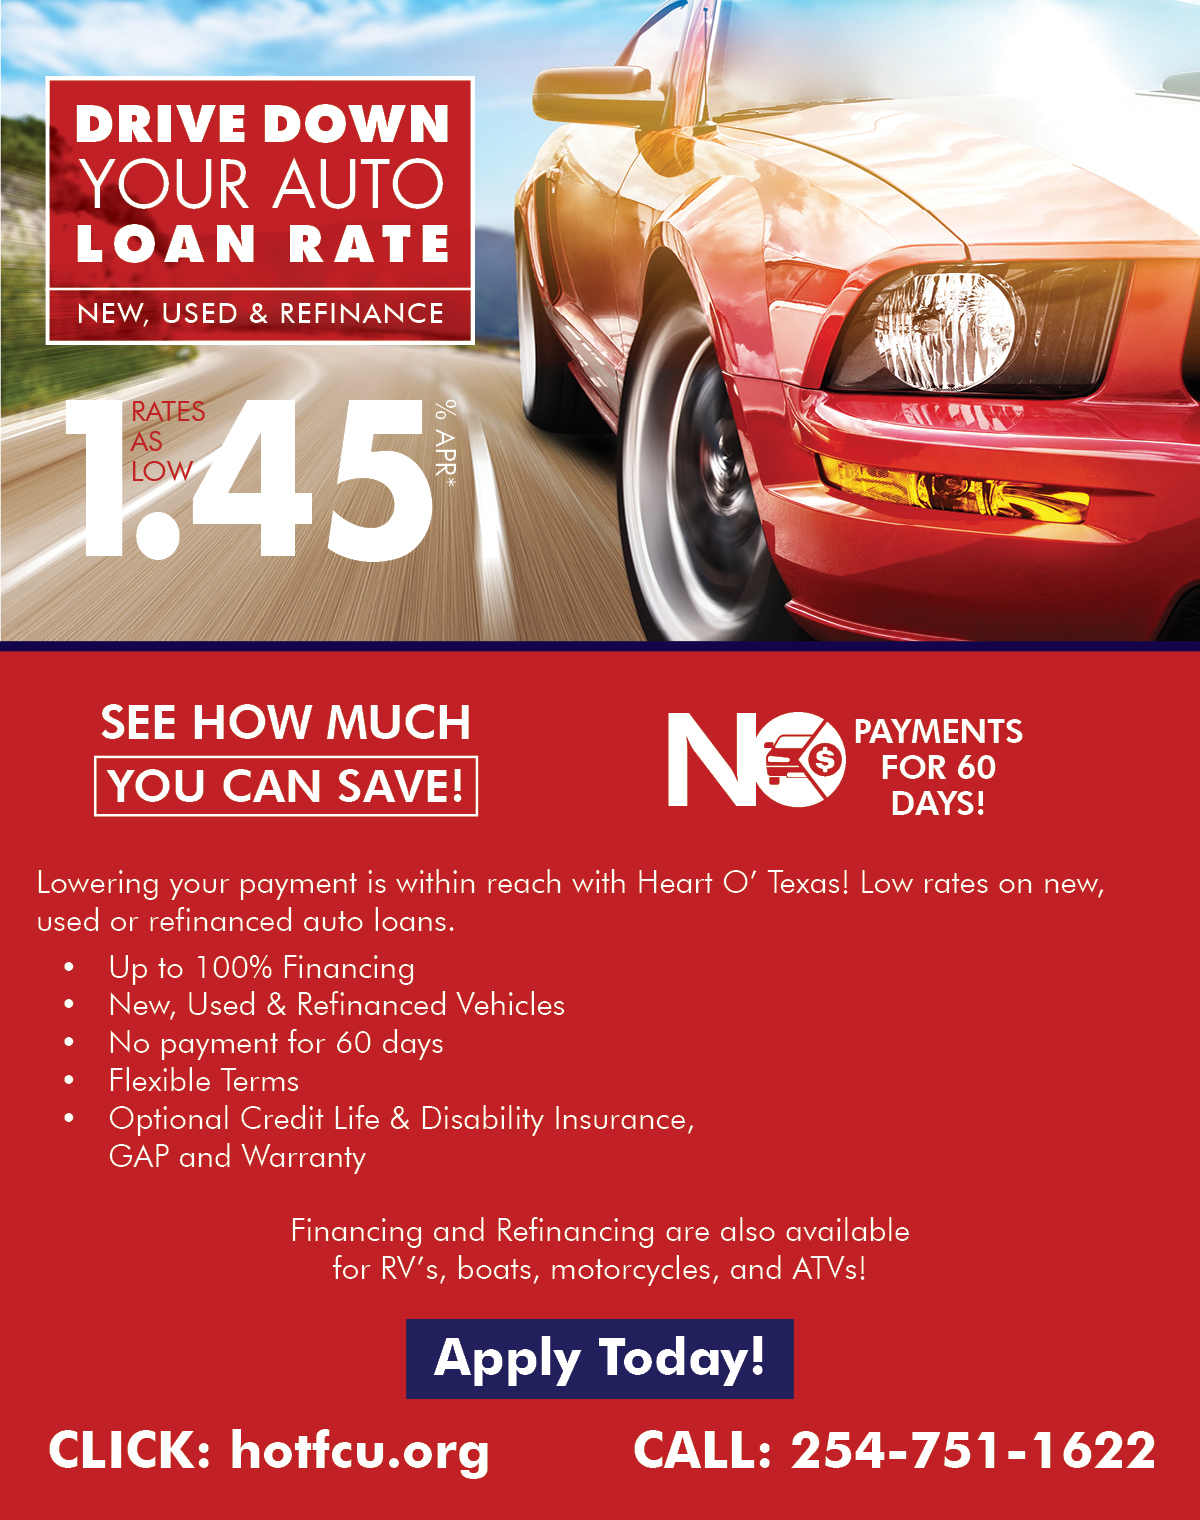 Heart O' Texas Federal Credit Union - Drive Down Your Auto Lone Rate - New, Used, Refinance Auto Loans Waco, Texas